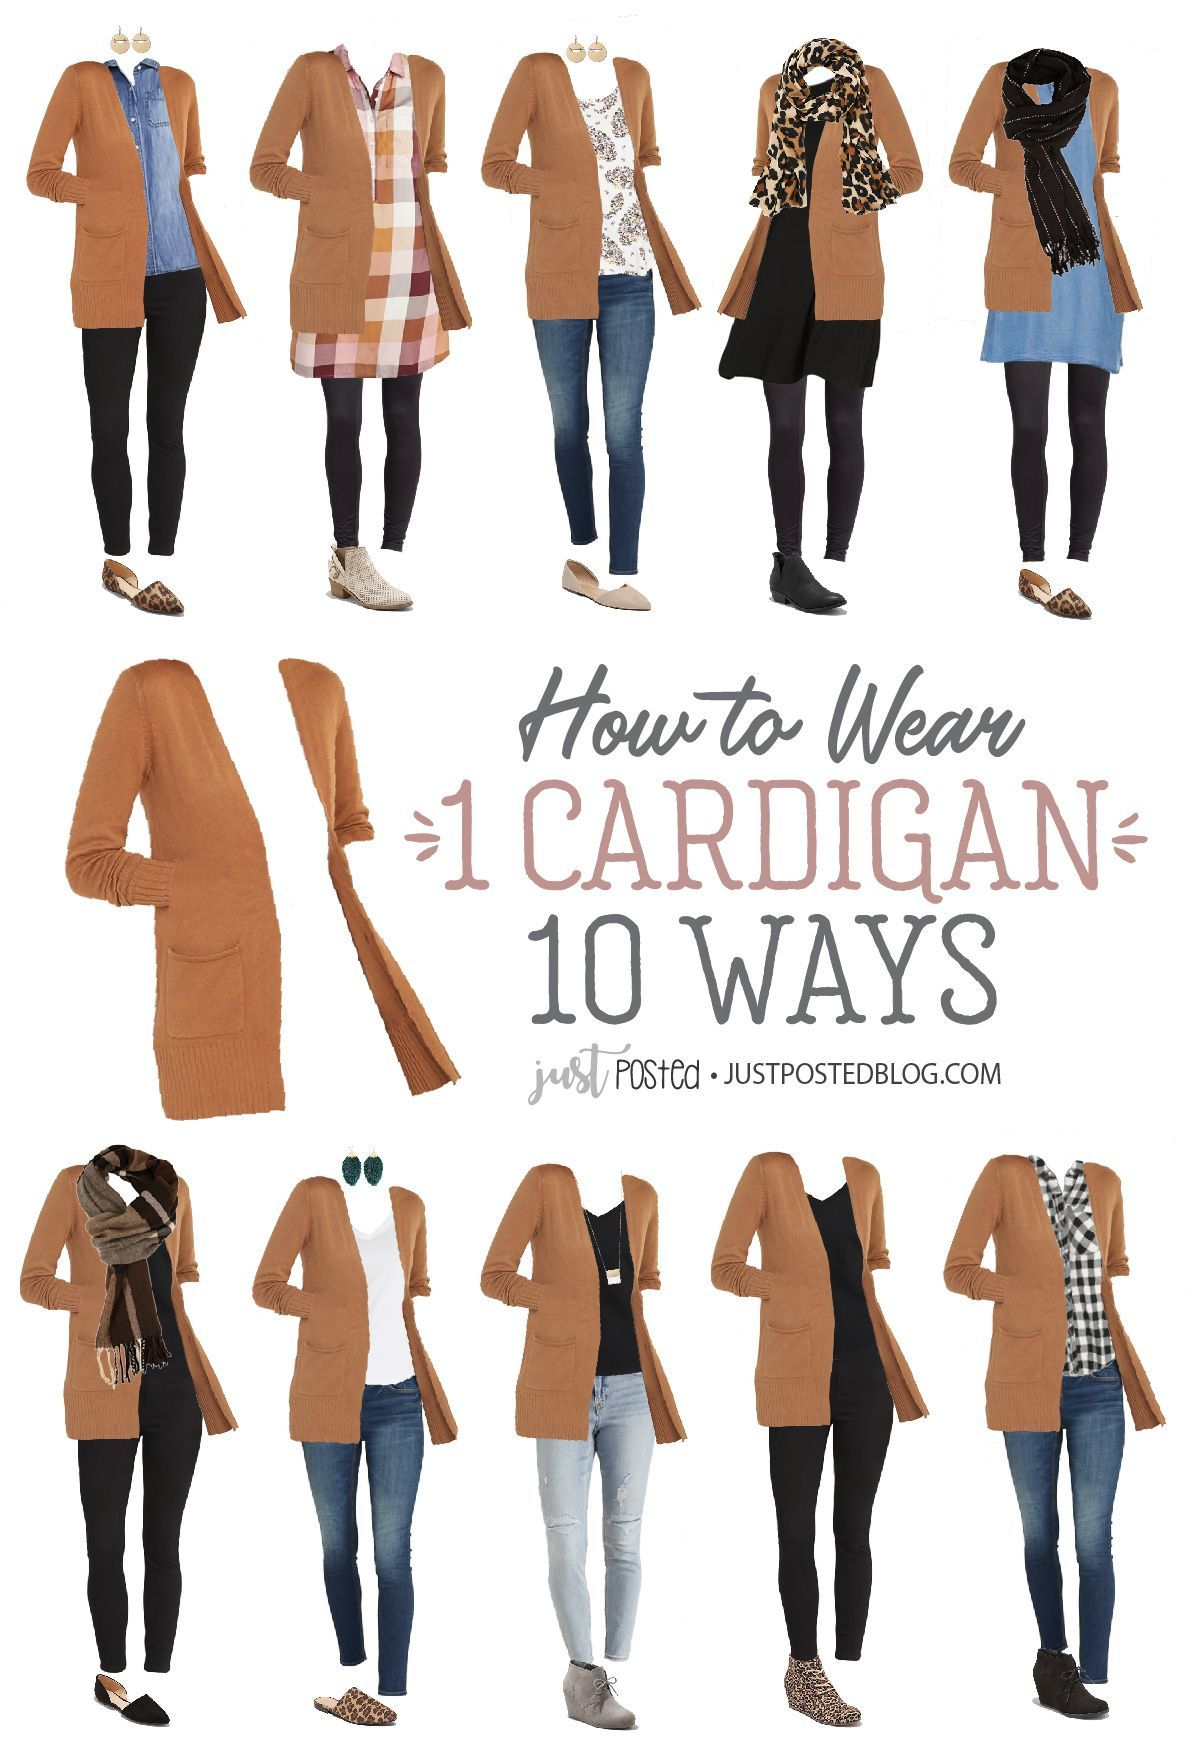 How to Wear and Style 1 Cardigan 10 Different Ways: Each look is Under